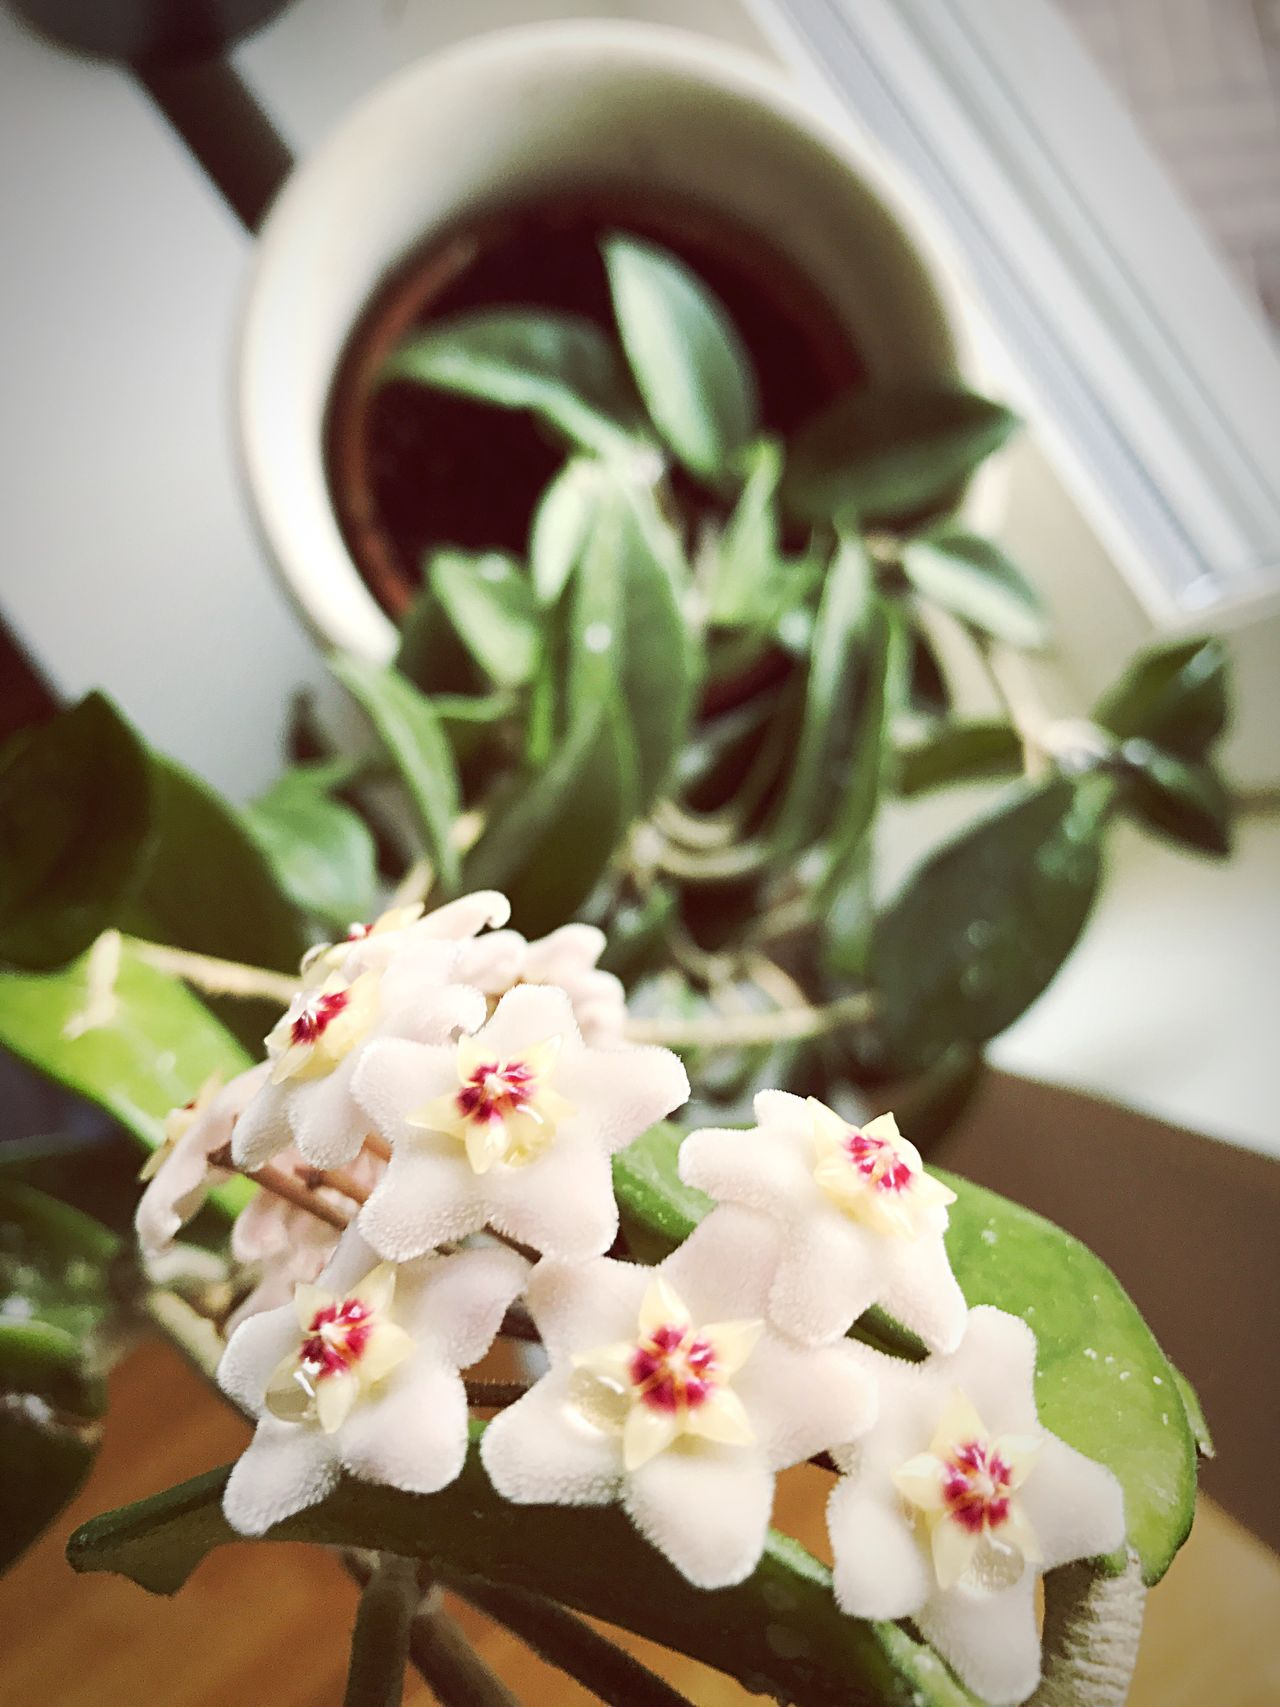 Hoya carnosa in our kitchen Freshness Flower Indoors  No People Close-up Focus On Foreground Leaf Plant Fragility Day Nature Flower Head Hoya Flowers Hoya Carnosa Flowers Plants And Flowers Flowers,Plants & Garden Flower Collection Flowers_collection